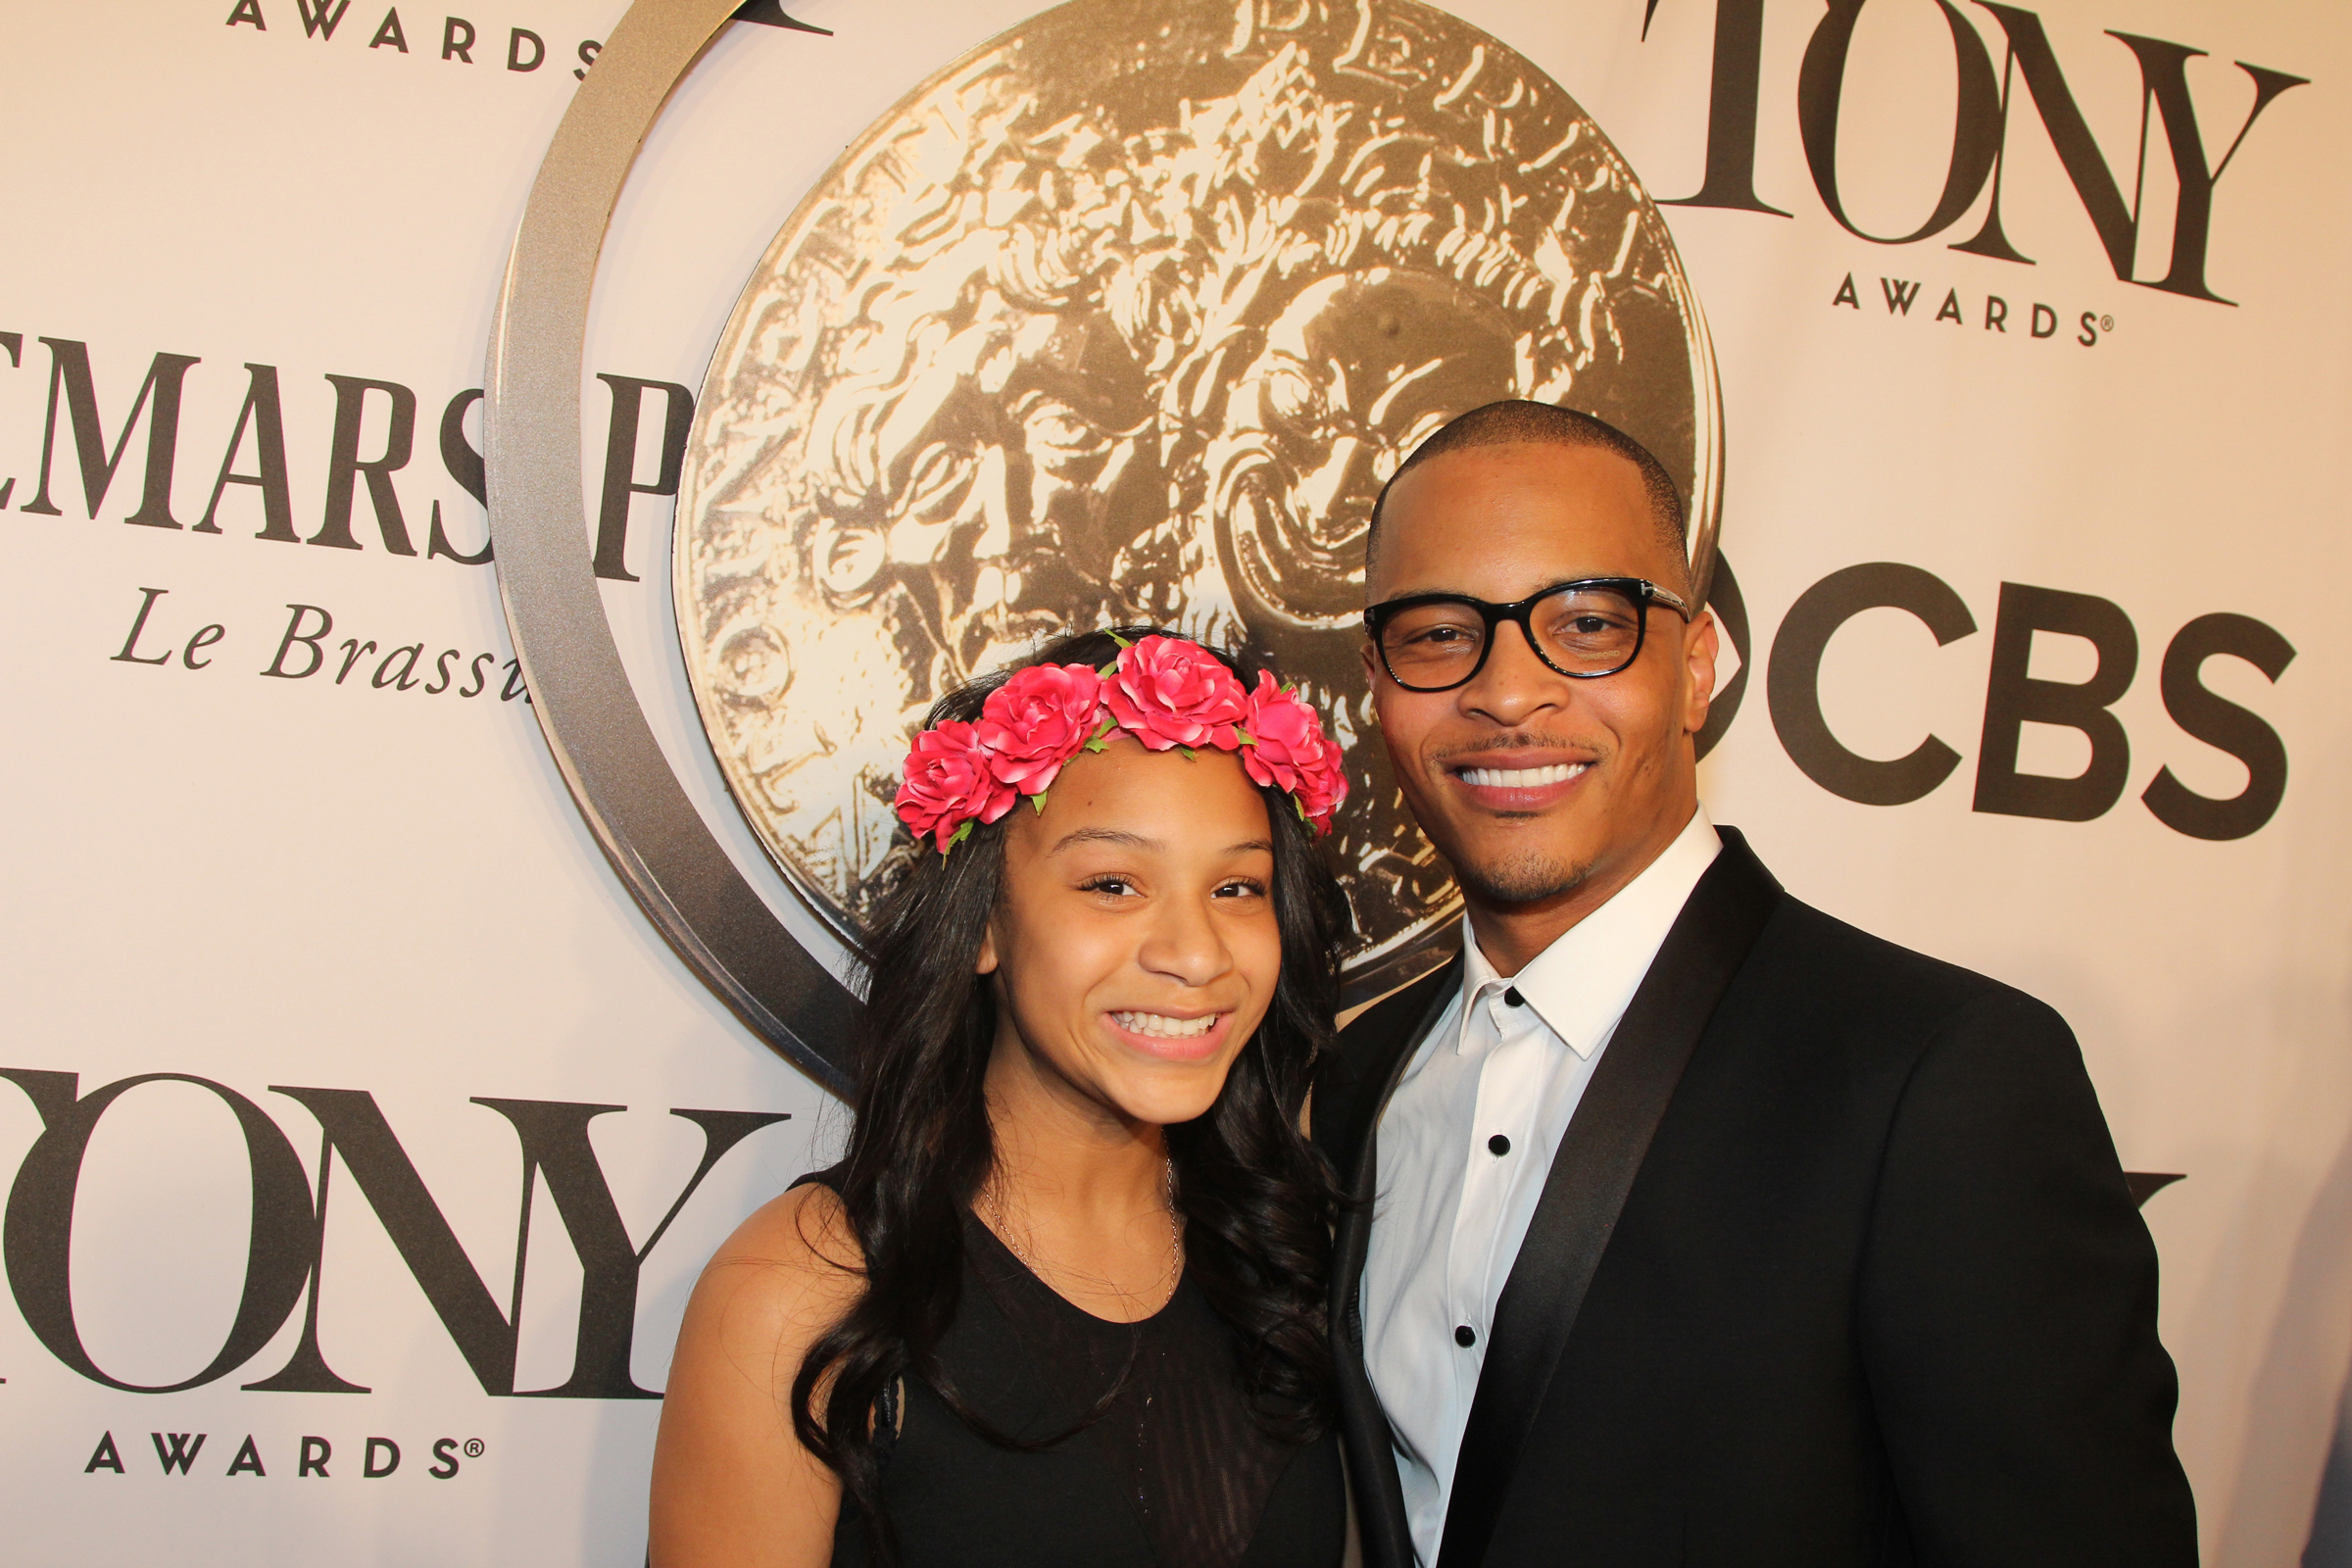 T.I. and his daughter Deyjah, who are both lightskinned Black people wearing formal clothes, attend an awards ceremony together